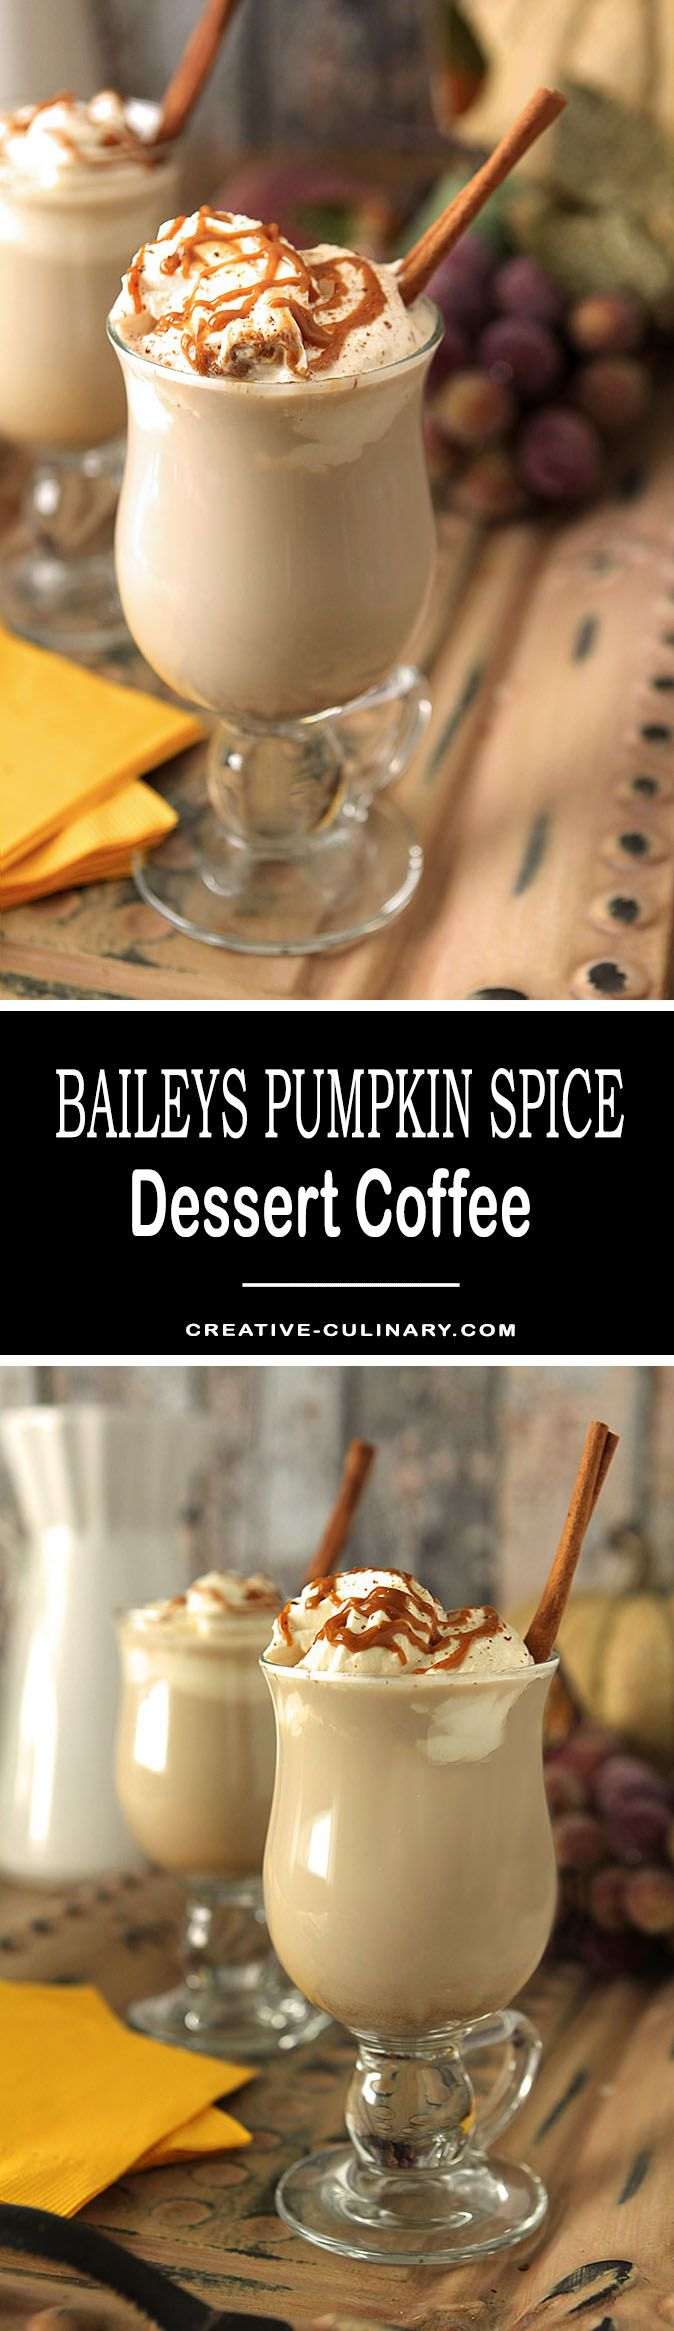 This Dessert Coffee with Bailey's Pumpkin Spice Liqueur is a special treat that is sure to warm you to your toes! via @creativculinary